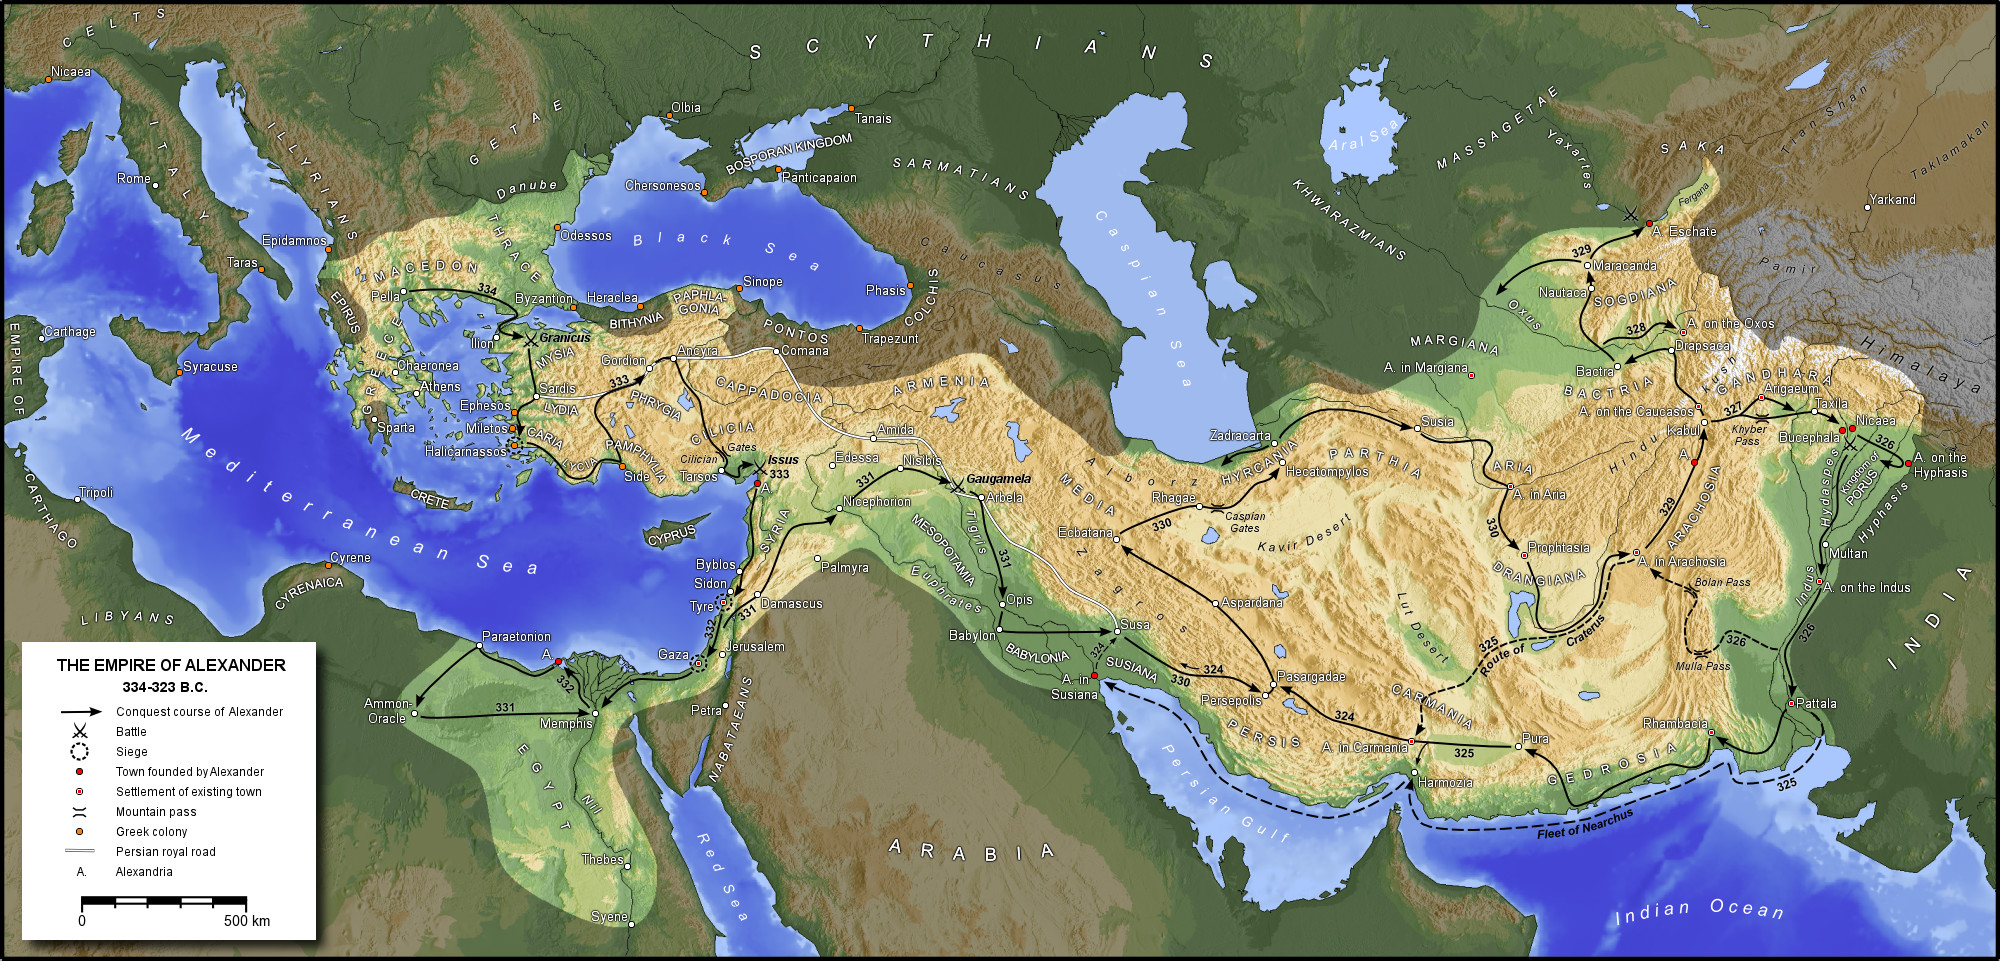 The Macedonian empire of Alexander the Great 323 BC